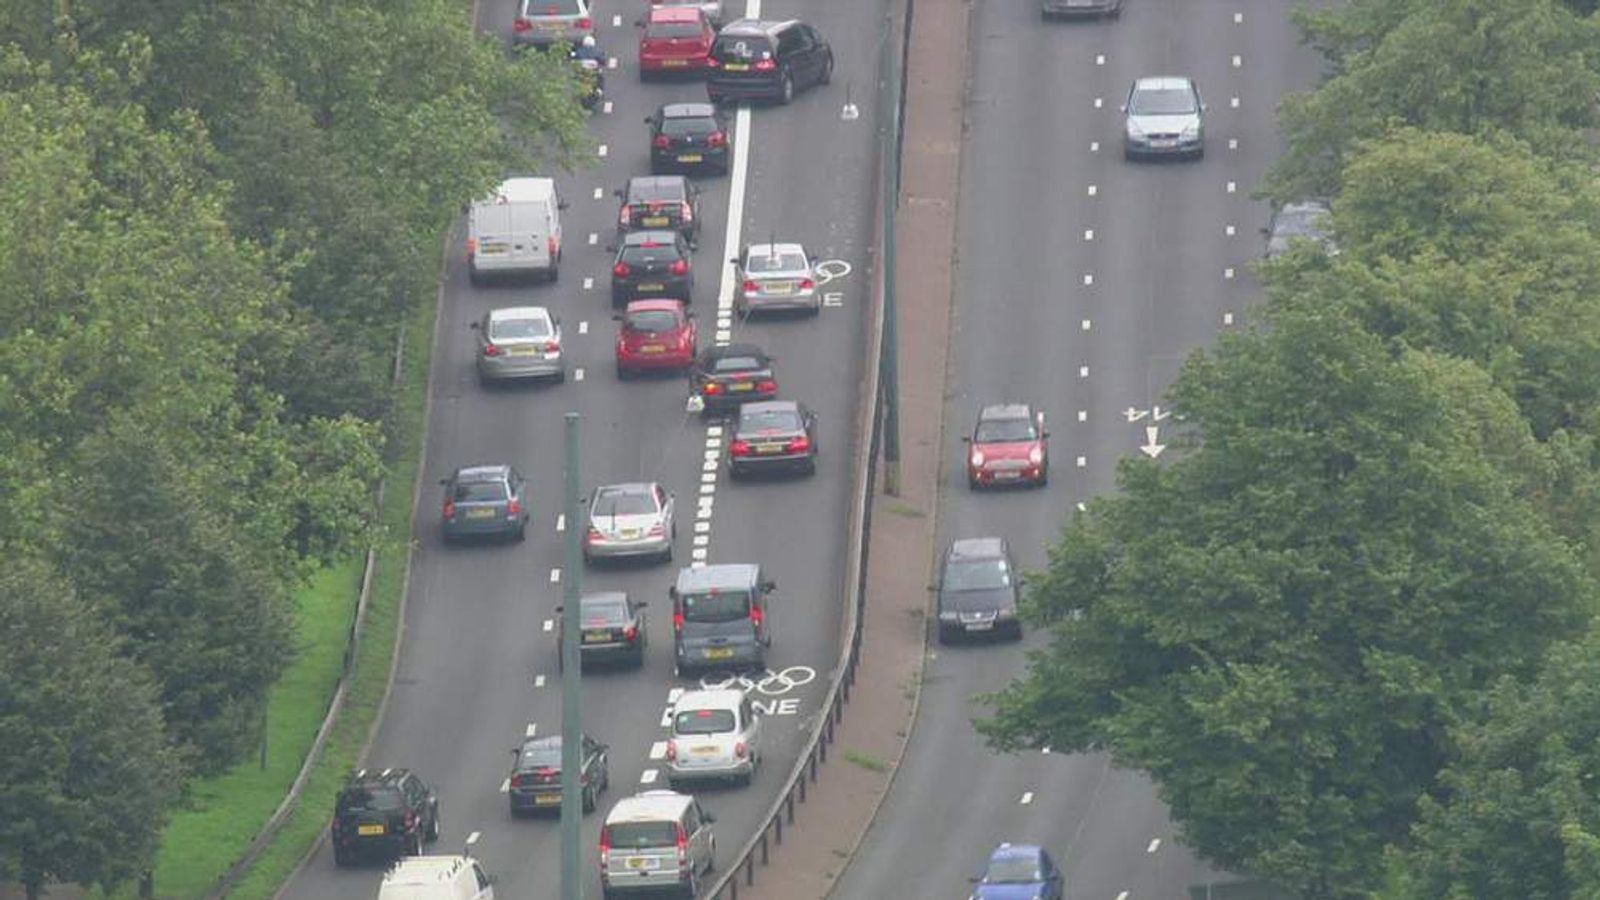 Confusion for motorists over Olympic lanes